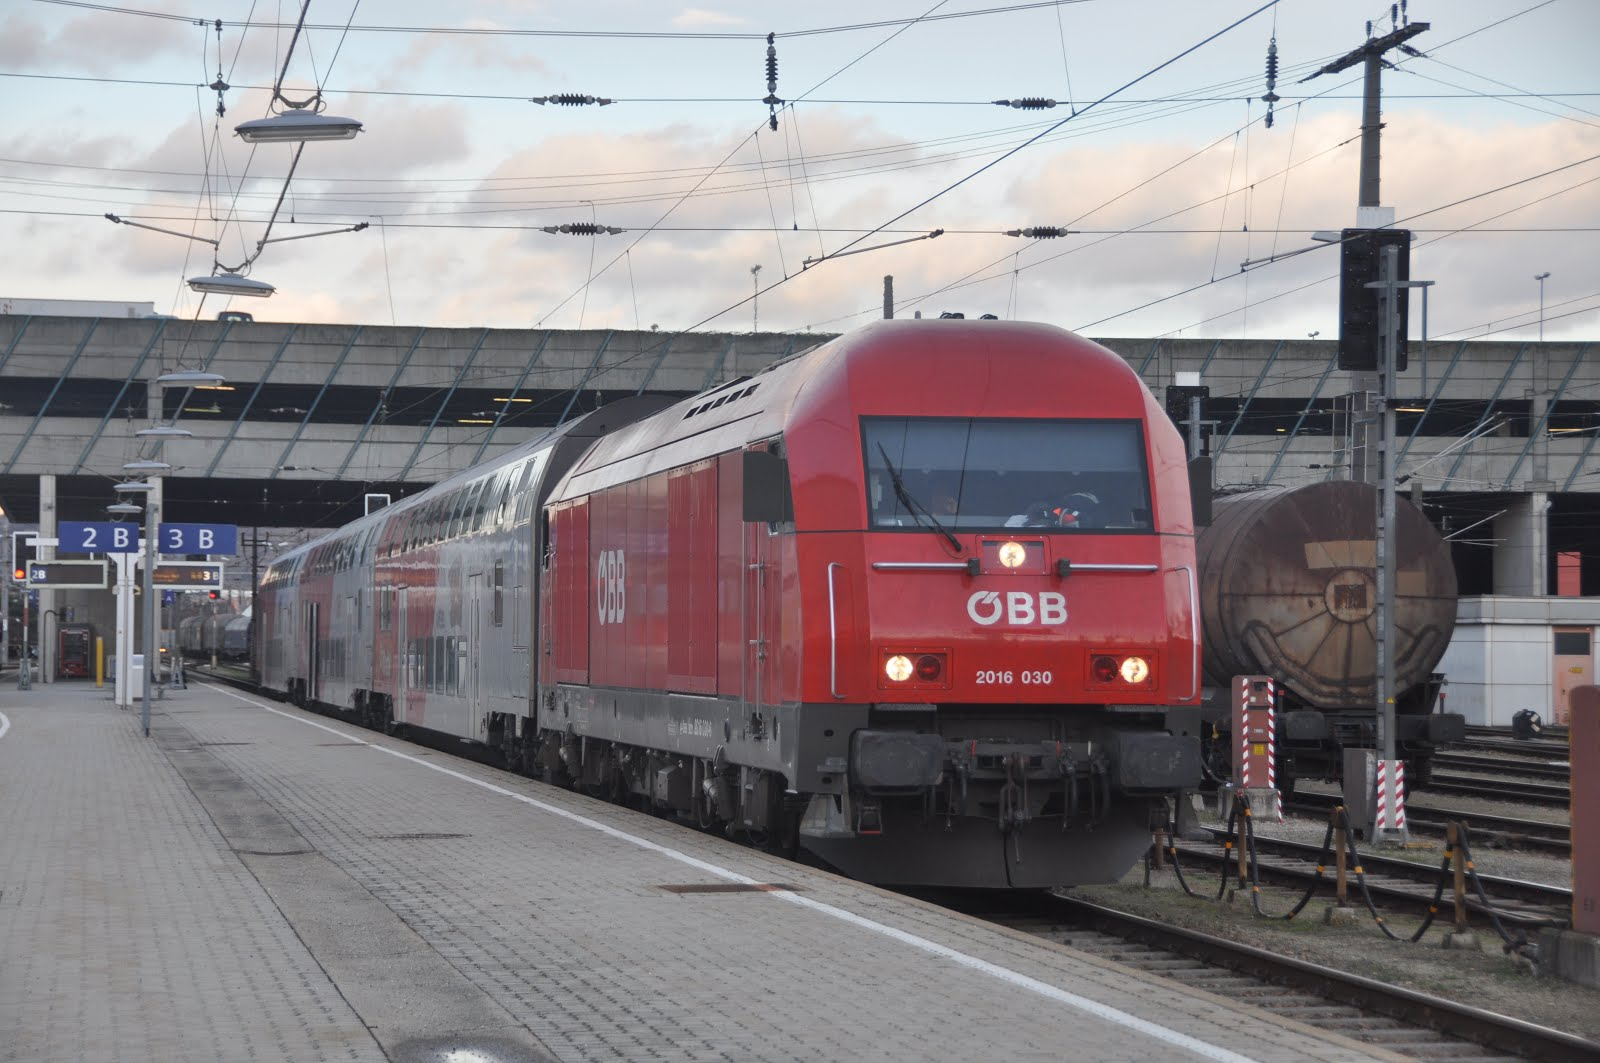 Trains Today: OBB Austria 4th-7th February 2016 Vienna and Semmering